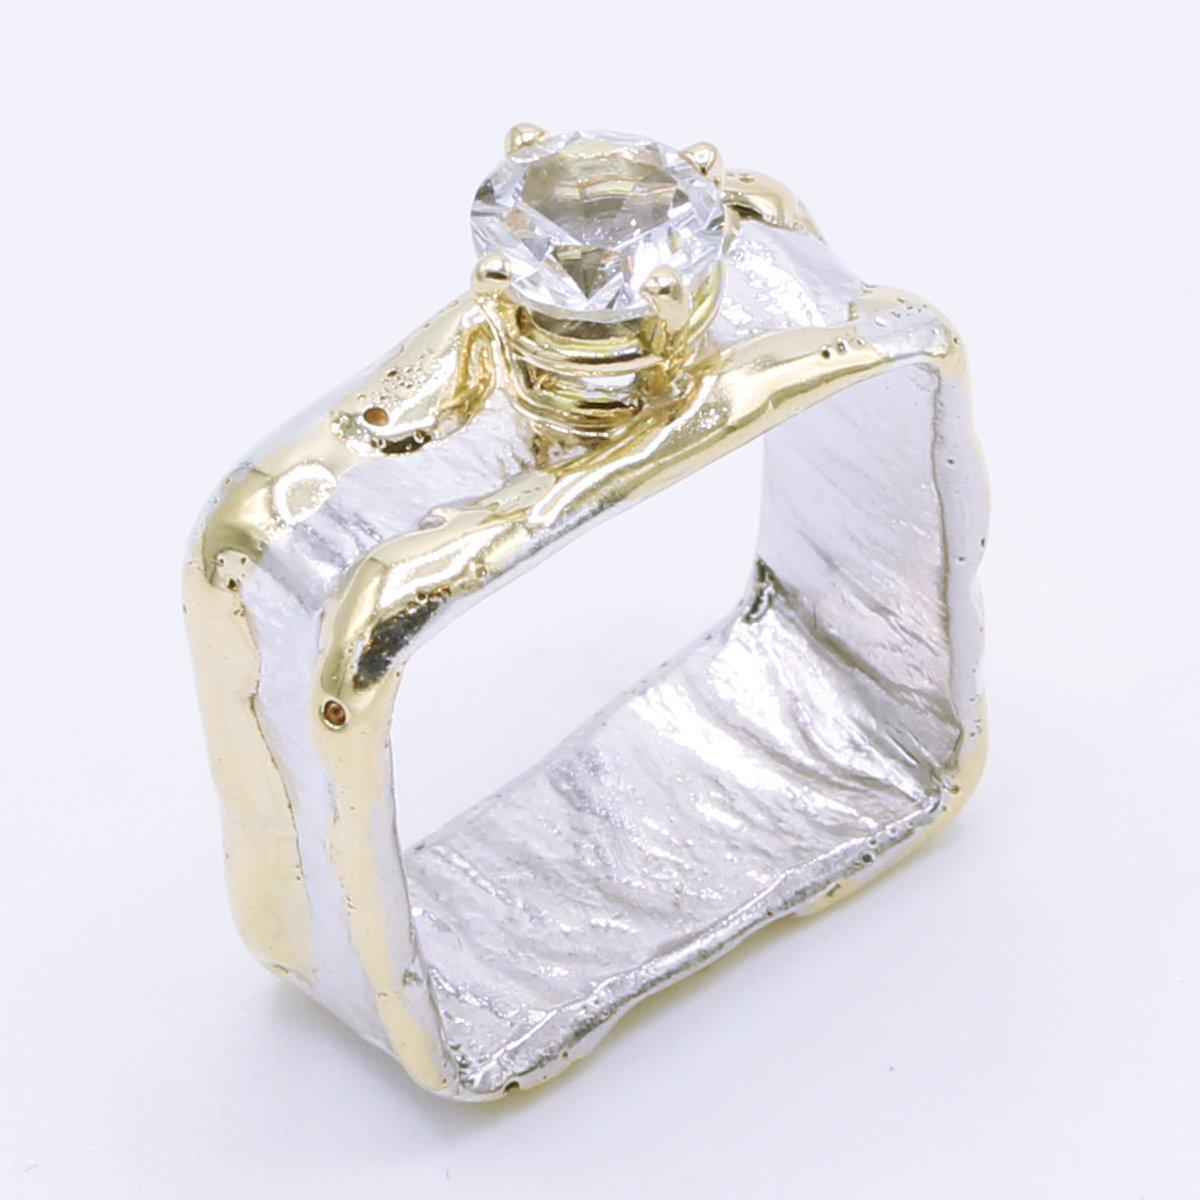 14K Gold & Crystalline Silver White Topaz Ring - 34985-Fusion Designs-Renee Taylor Gallery